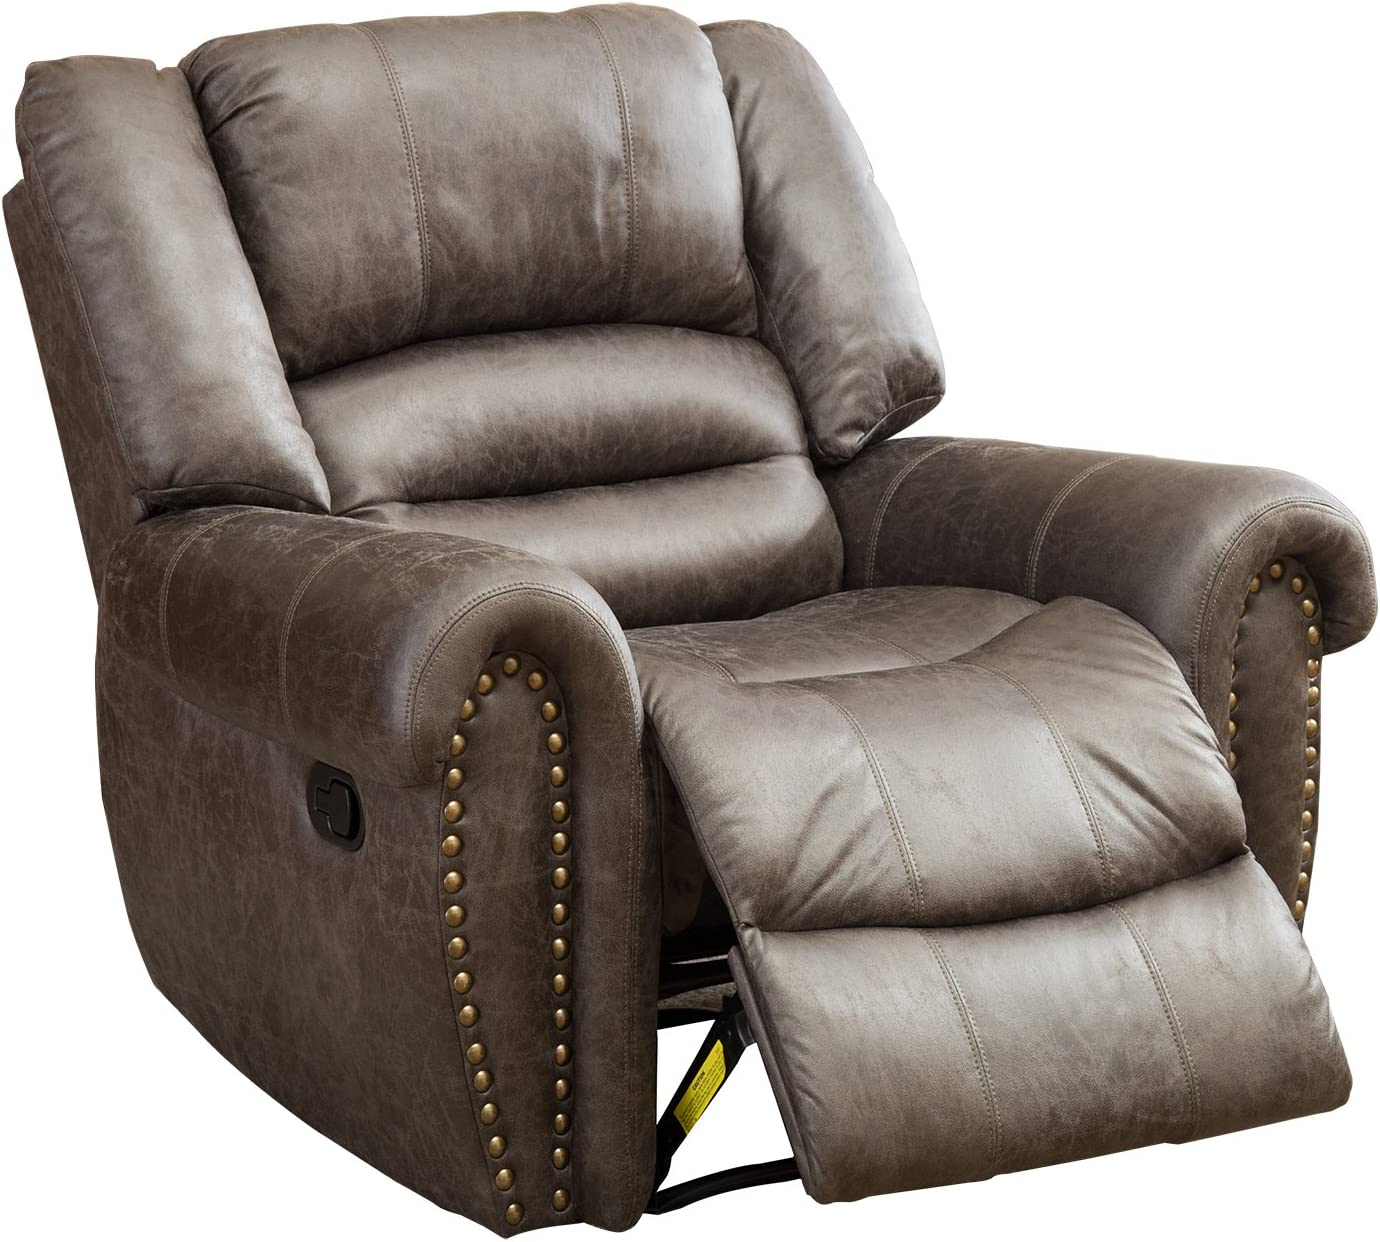 BONZY Oversized Recliner Leather Lounge Chair Reviews